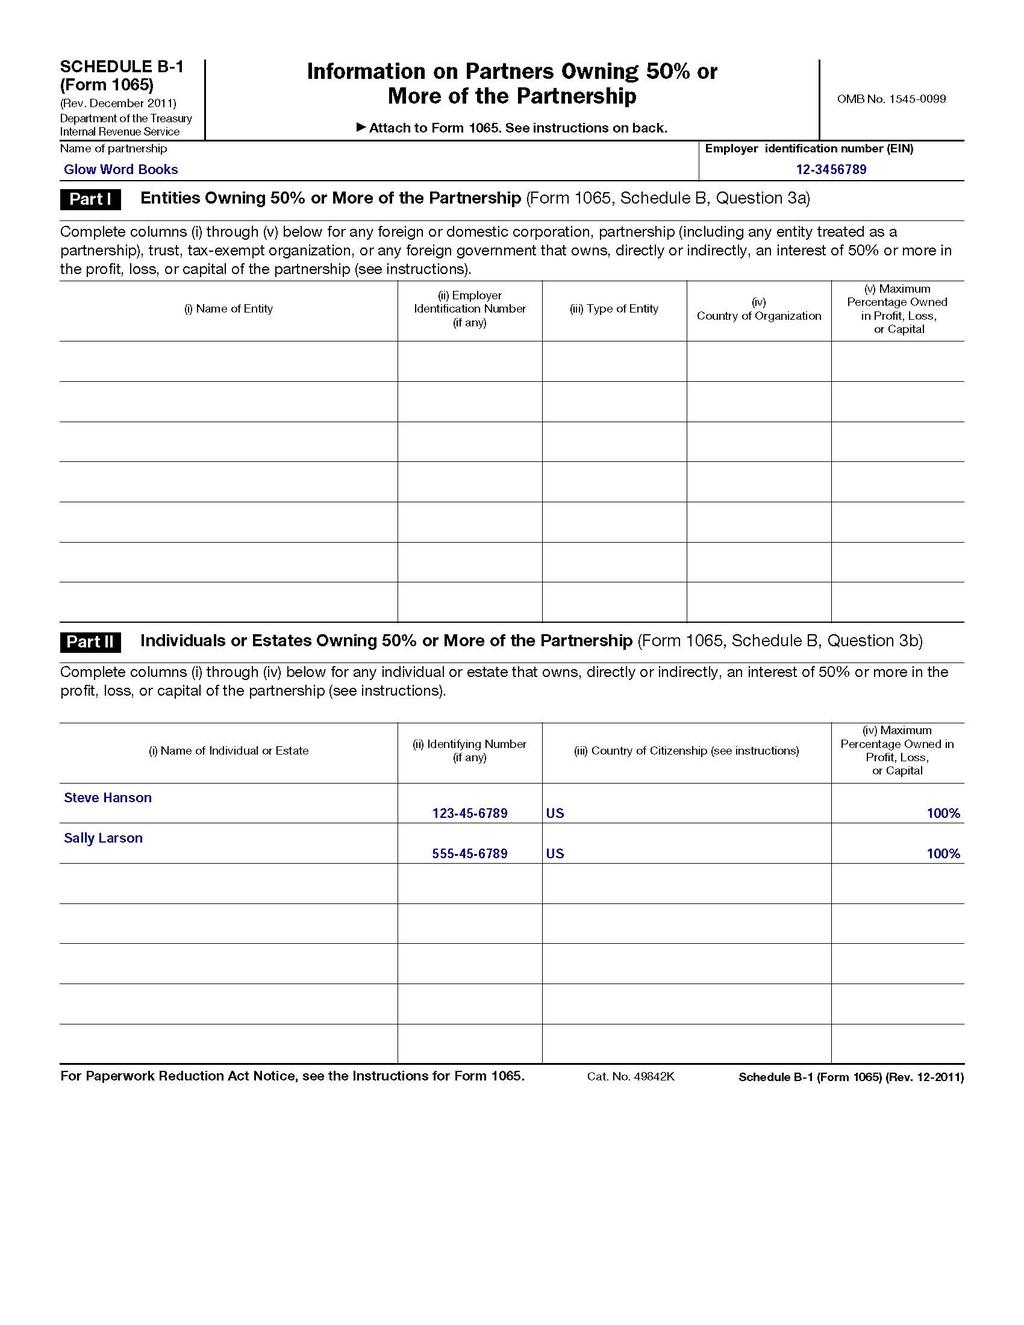 form 1065 schedule b-2  How to fill out an LLC 12 IRS Tax form